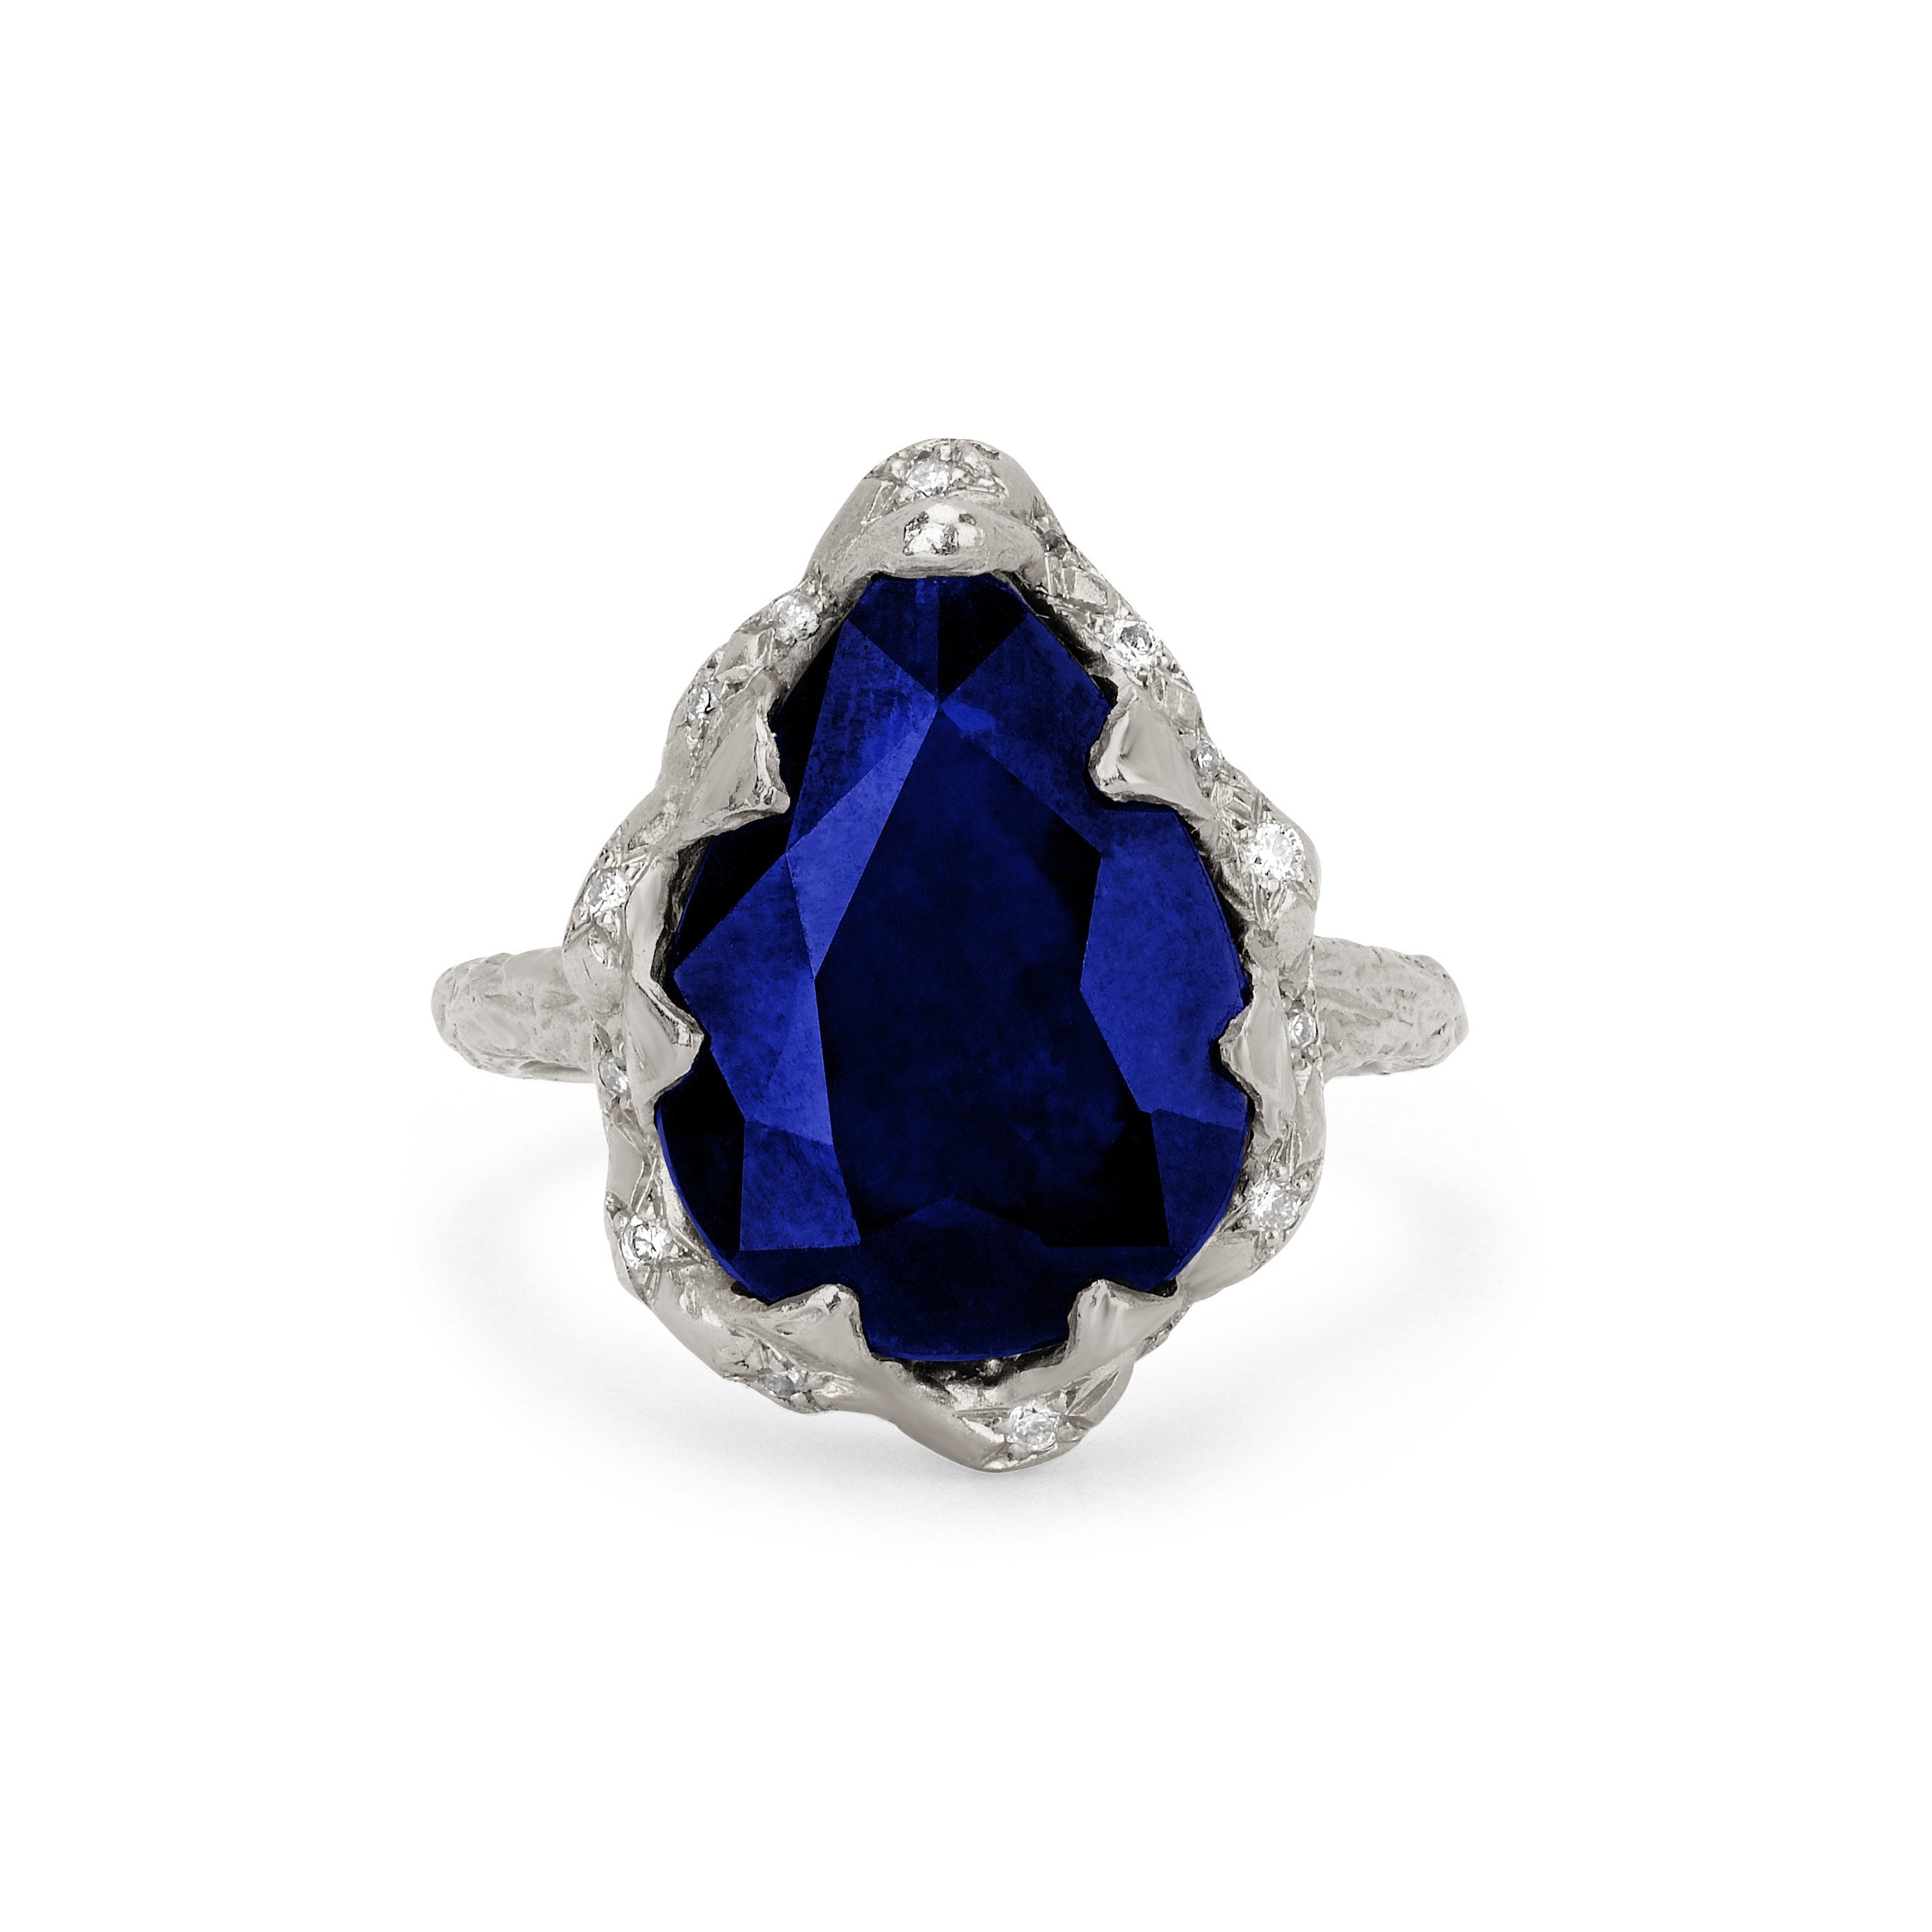 Queen Water Drop Sapphire Ring with Sprinkled Diamonds